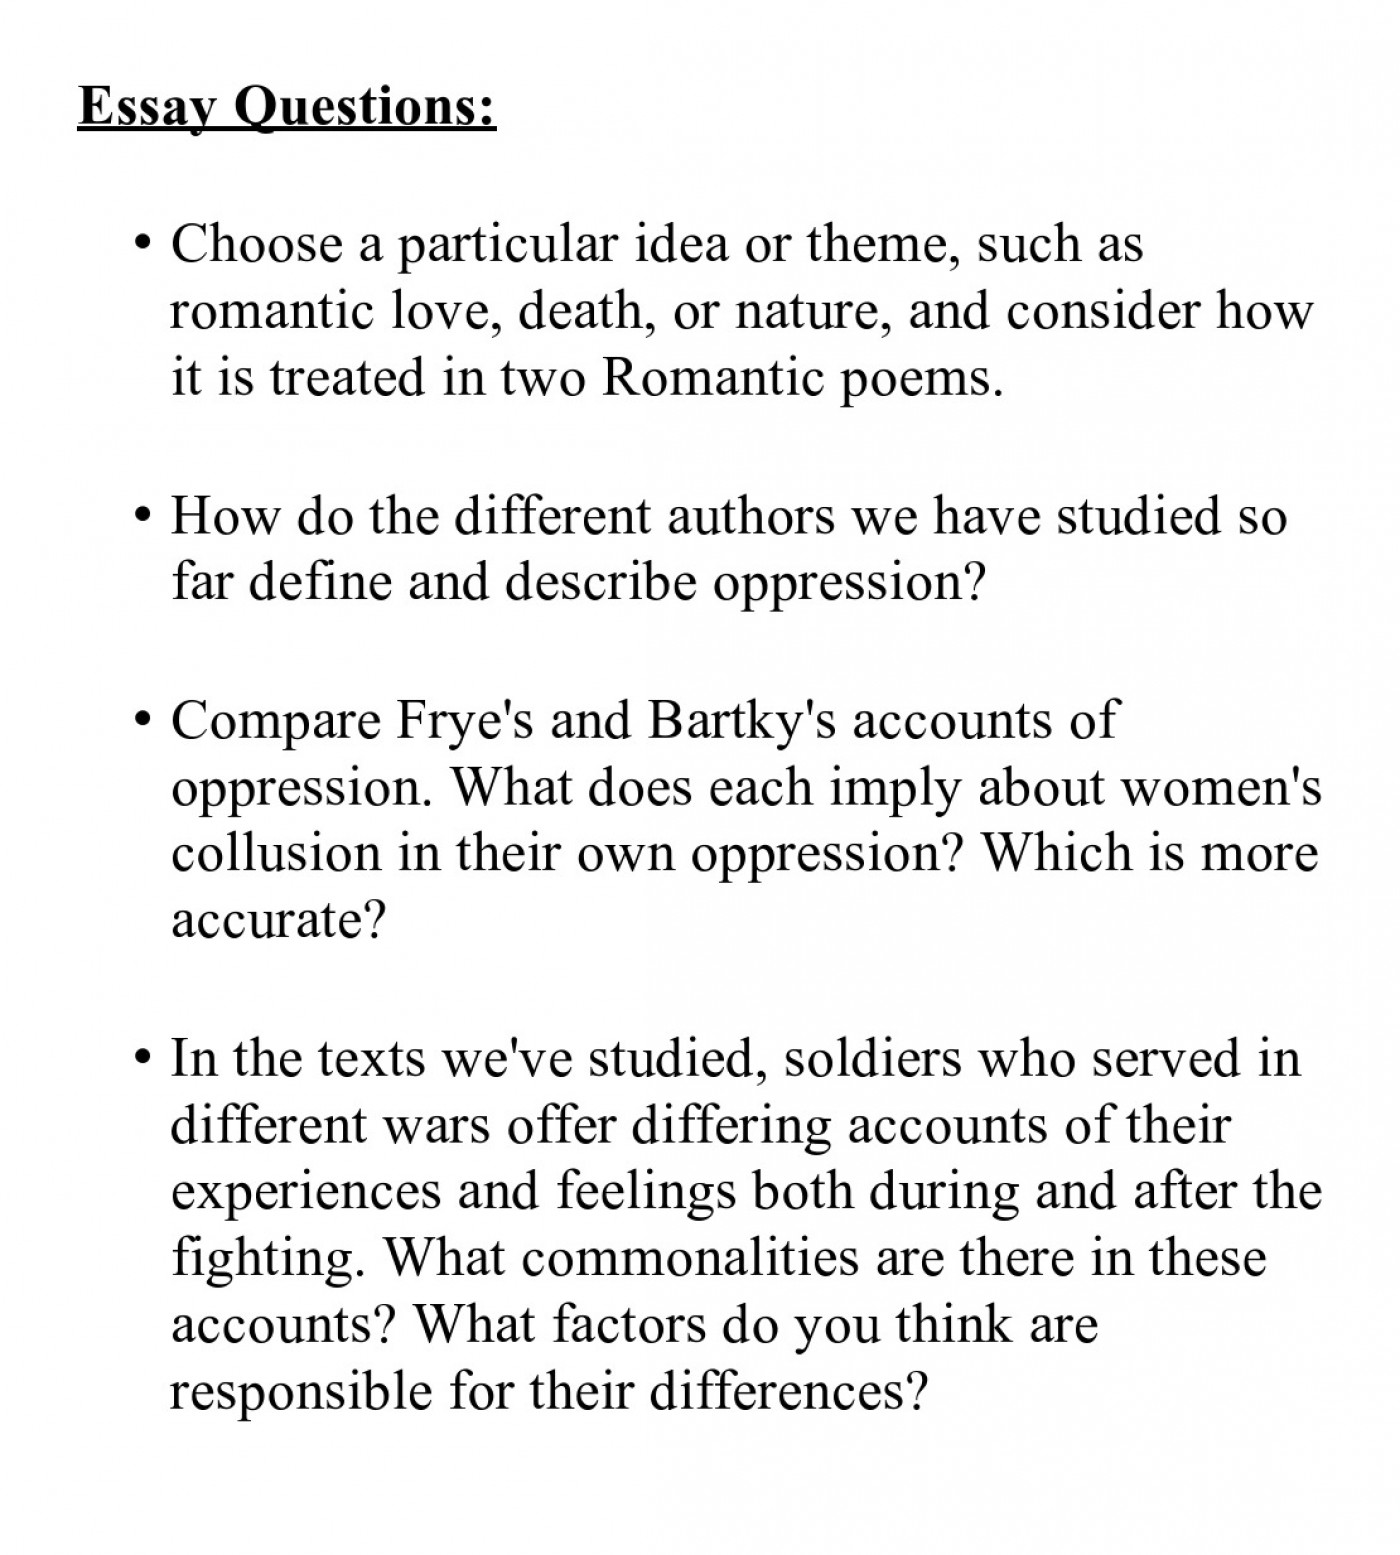 007 Essay Example Prompts Questions Best Writing For Middle School Science The Crucible Macbeth 1400